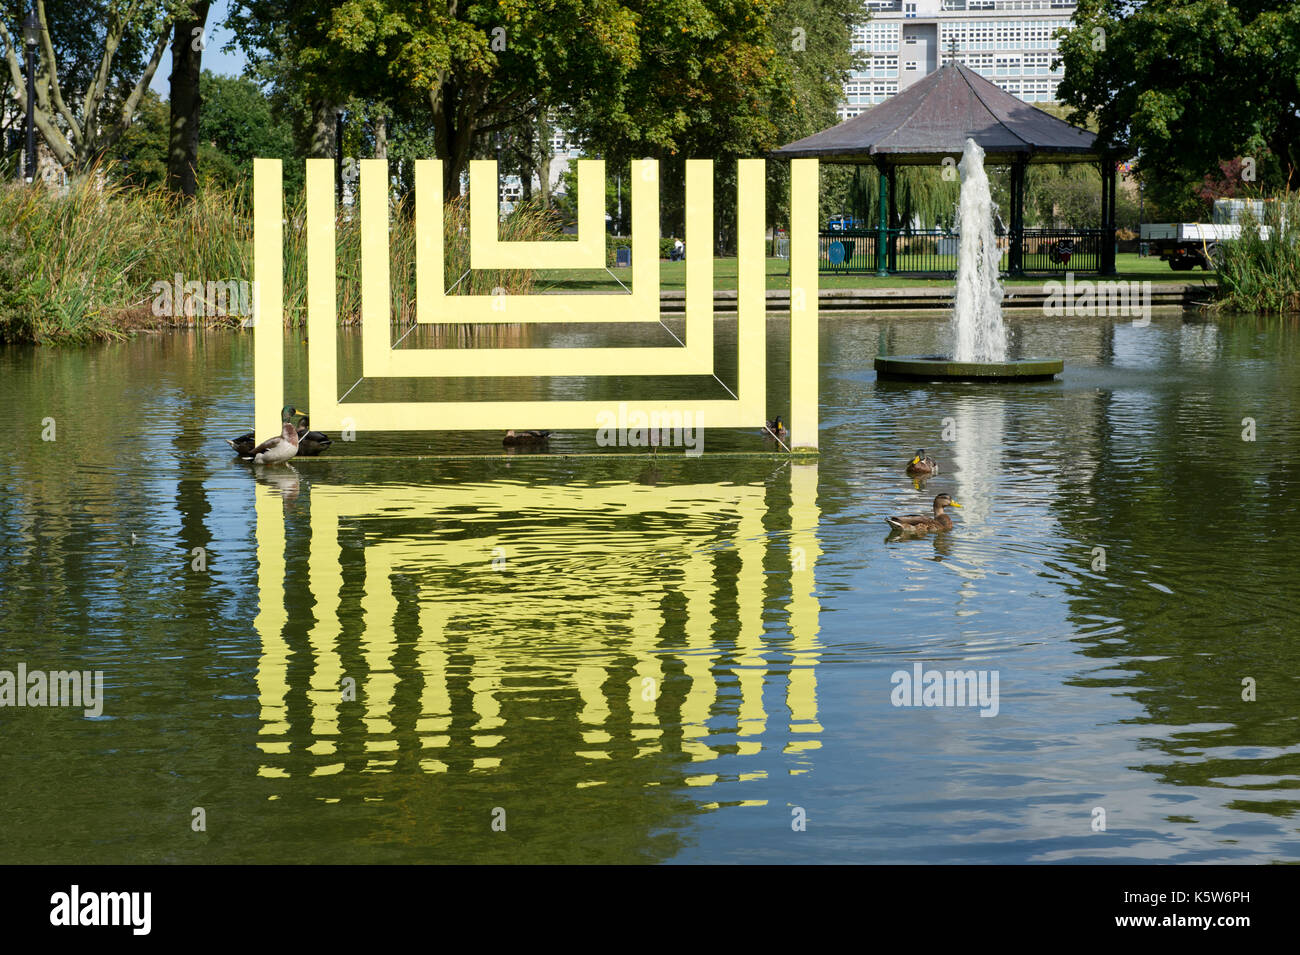 The Kingston Upon Hull UK City Of Culture 2017 logo reflected in the ponds of Queens Gardens - Stock Image